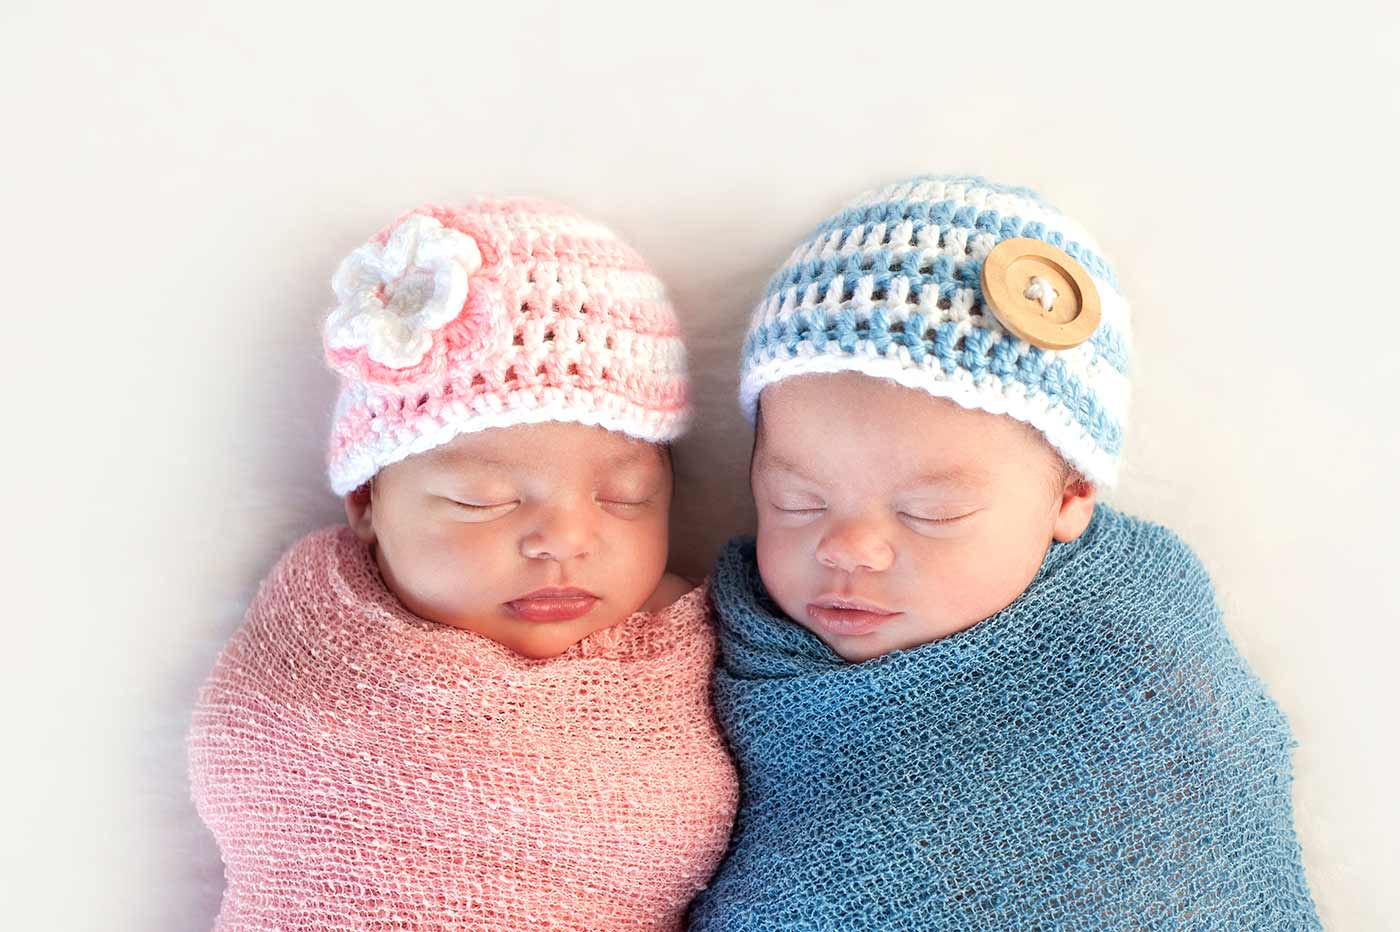 Cost of Twins